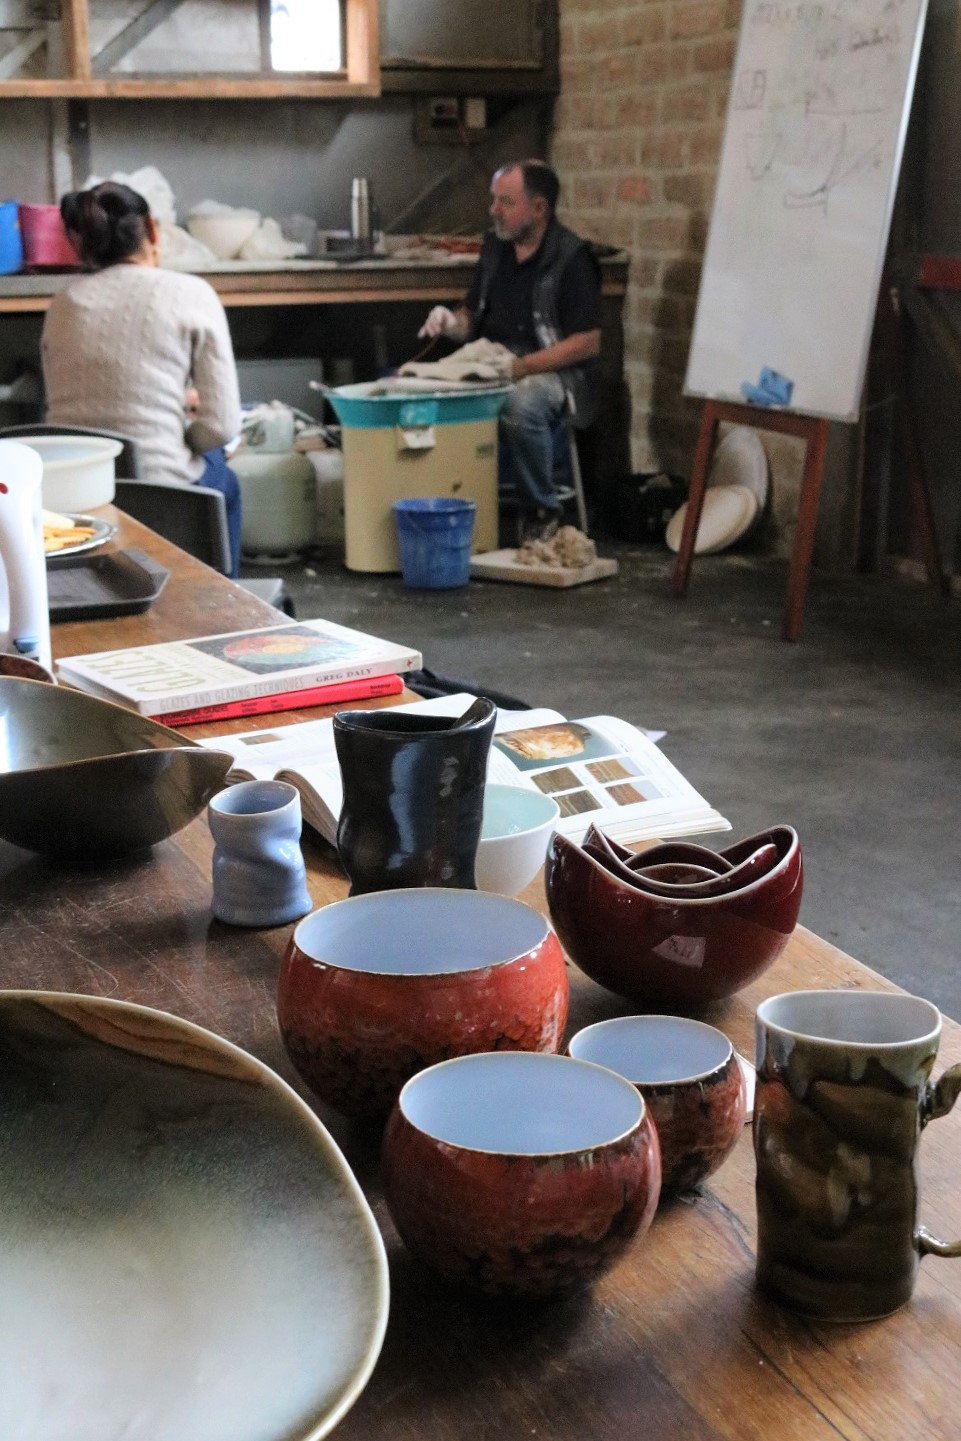 Brian Keyte Workshop: Wheel Throwing & Glazing, Skepsi @ Montsalvat, April 2017